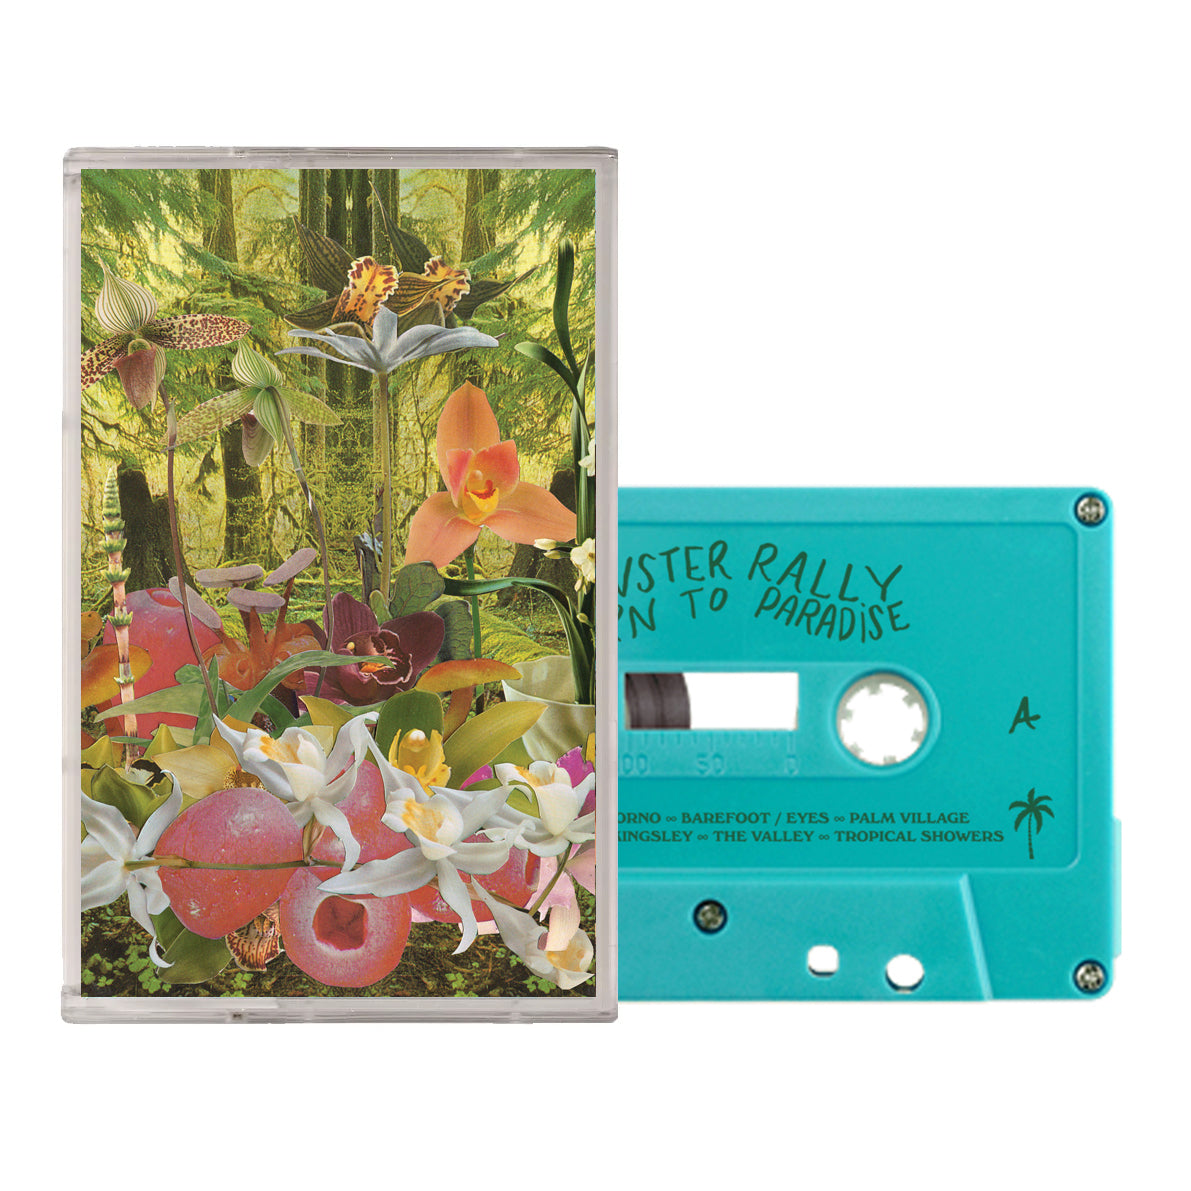 Monster Rally // Return to Paradise Cassette Tape